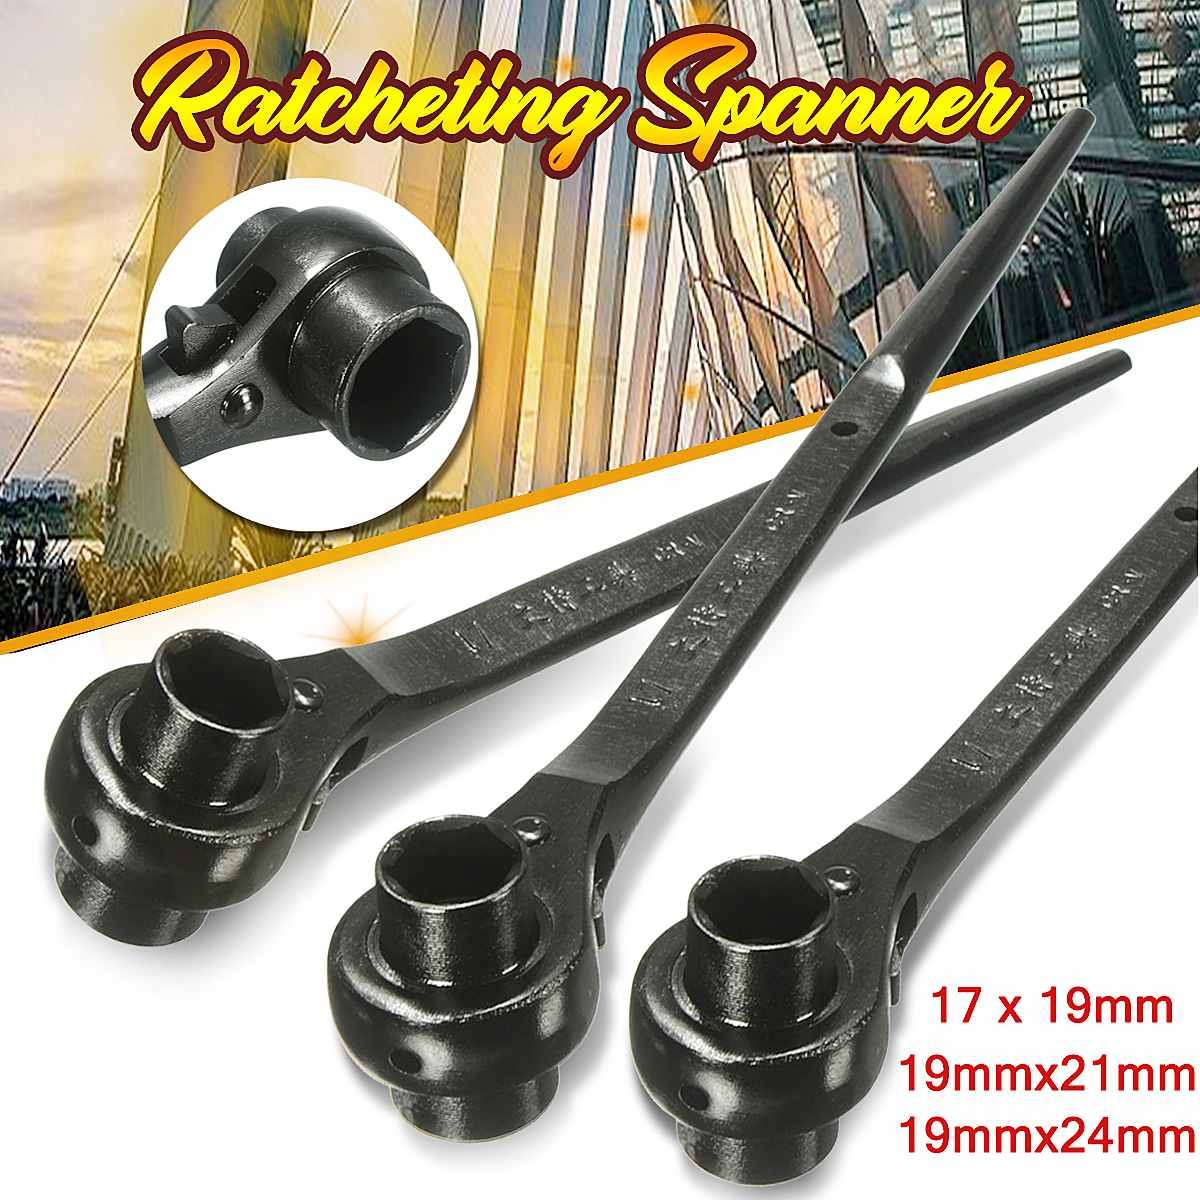 17 19 21 24mm Ratchet Wrench Universal Head Wrench End Socket Wrench Adjustable Socket Adapter Hand Tools Car Tool